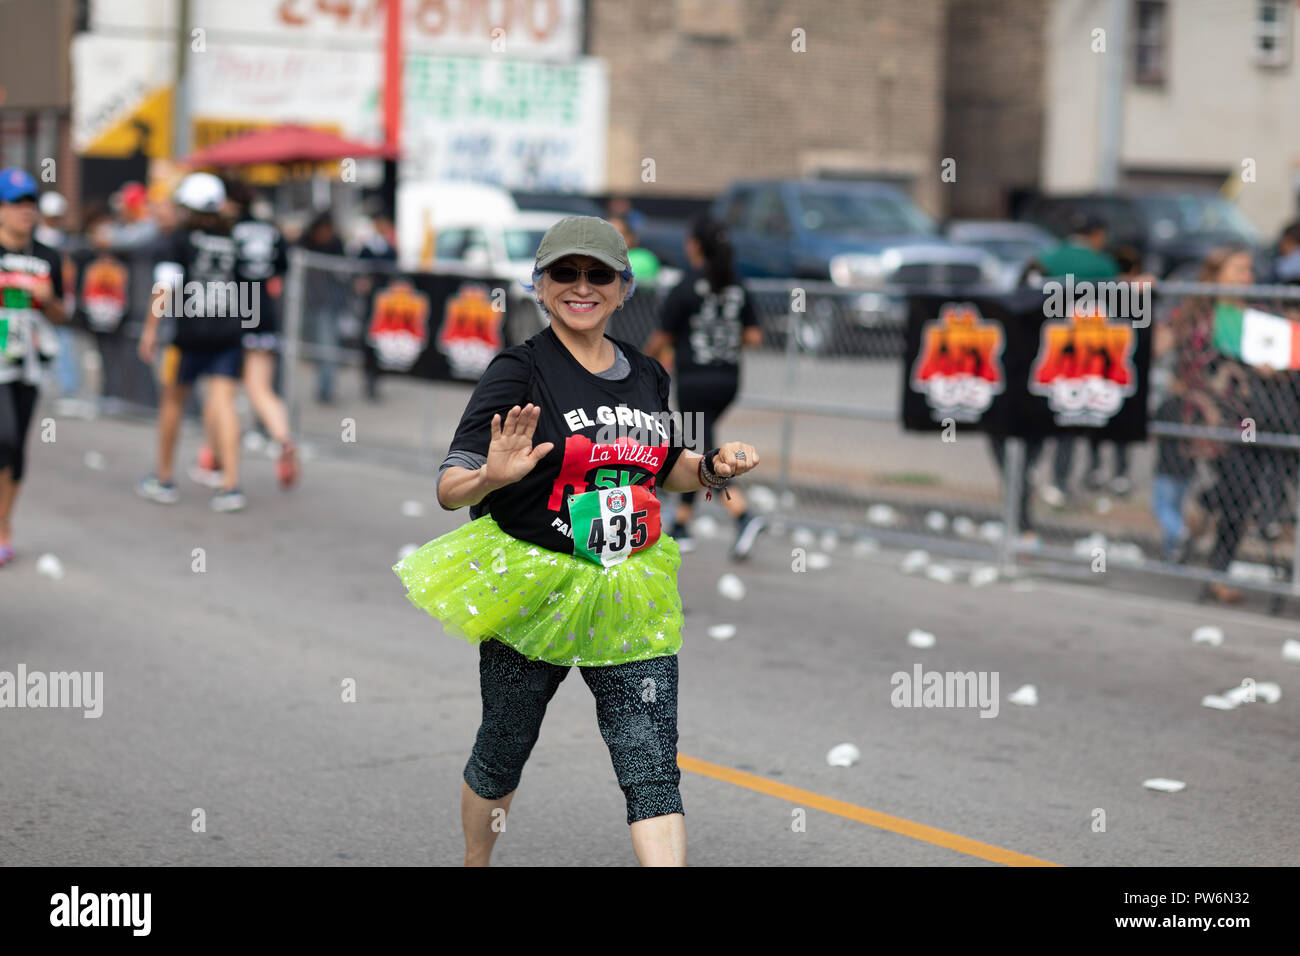 Chicago, Illinois , USA - September 9, 2018, El Grito 5K at la Villita, family run walk, men and women running in the annual 5 kilometers race, prior  - Stock Image